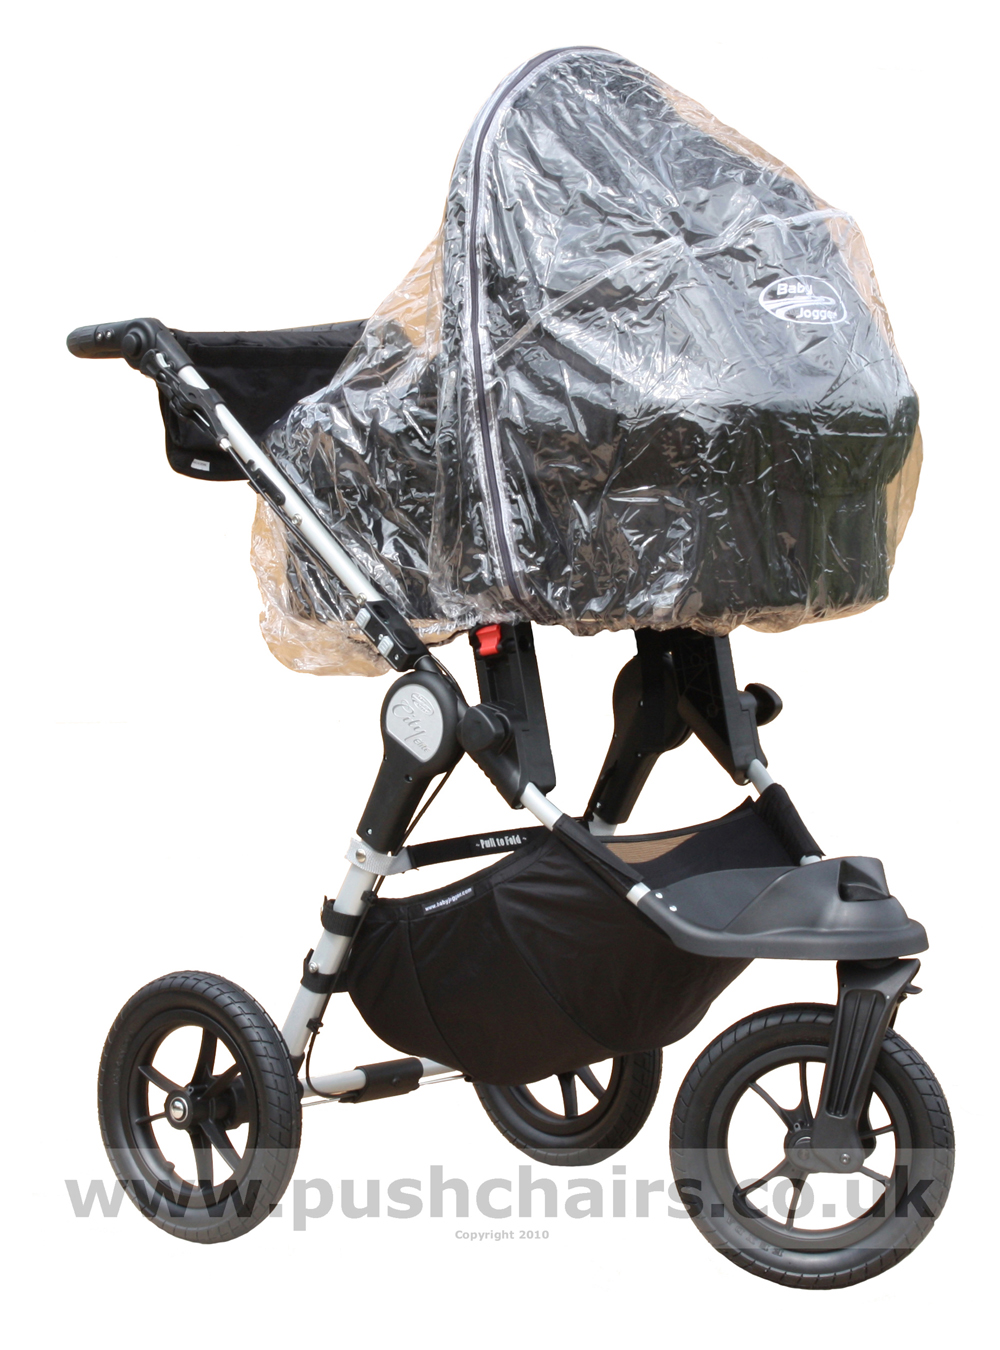 Baby Jogger City Elite Black & Charcoal with Black Carrycot and Rain Cover fitted - click for larger image